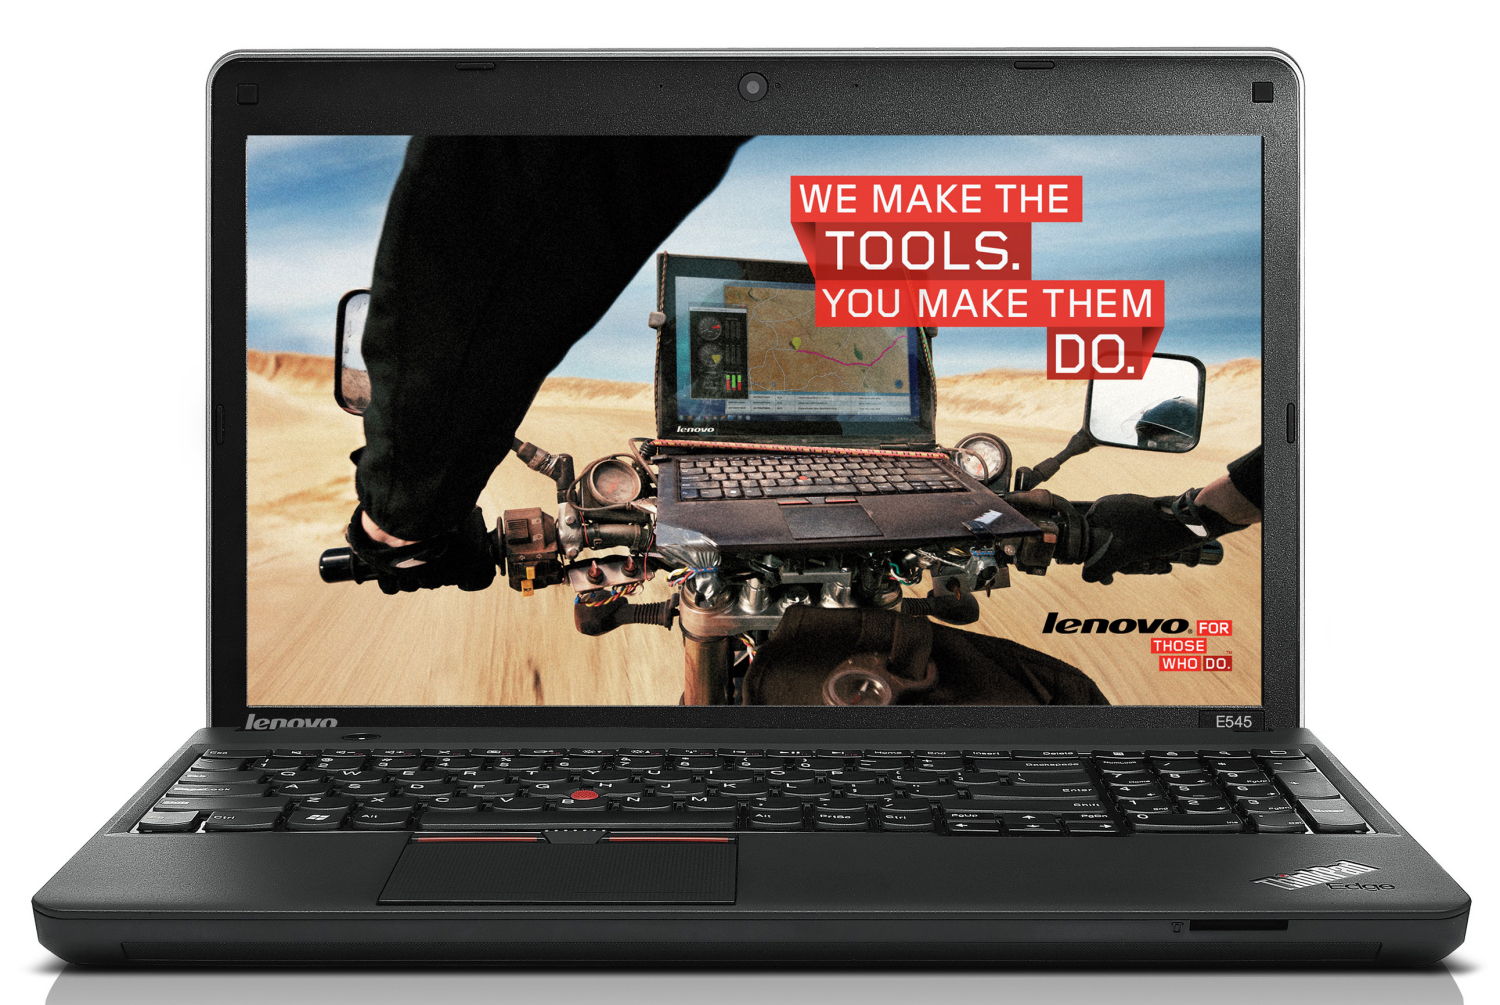 Lenovo ThinkPad Edge E545 Broadcom WLAN Last